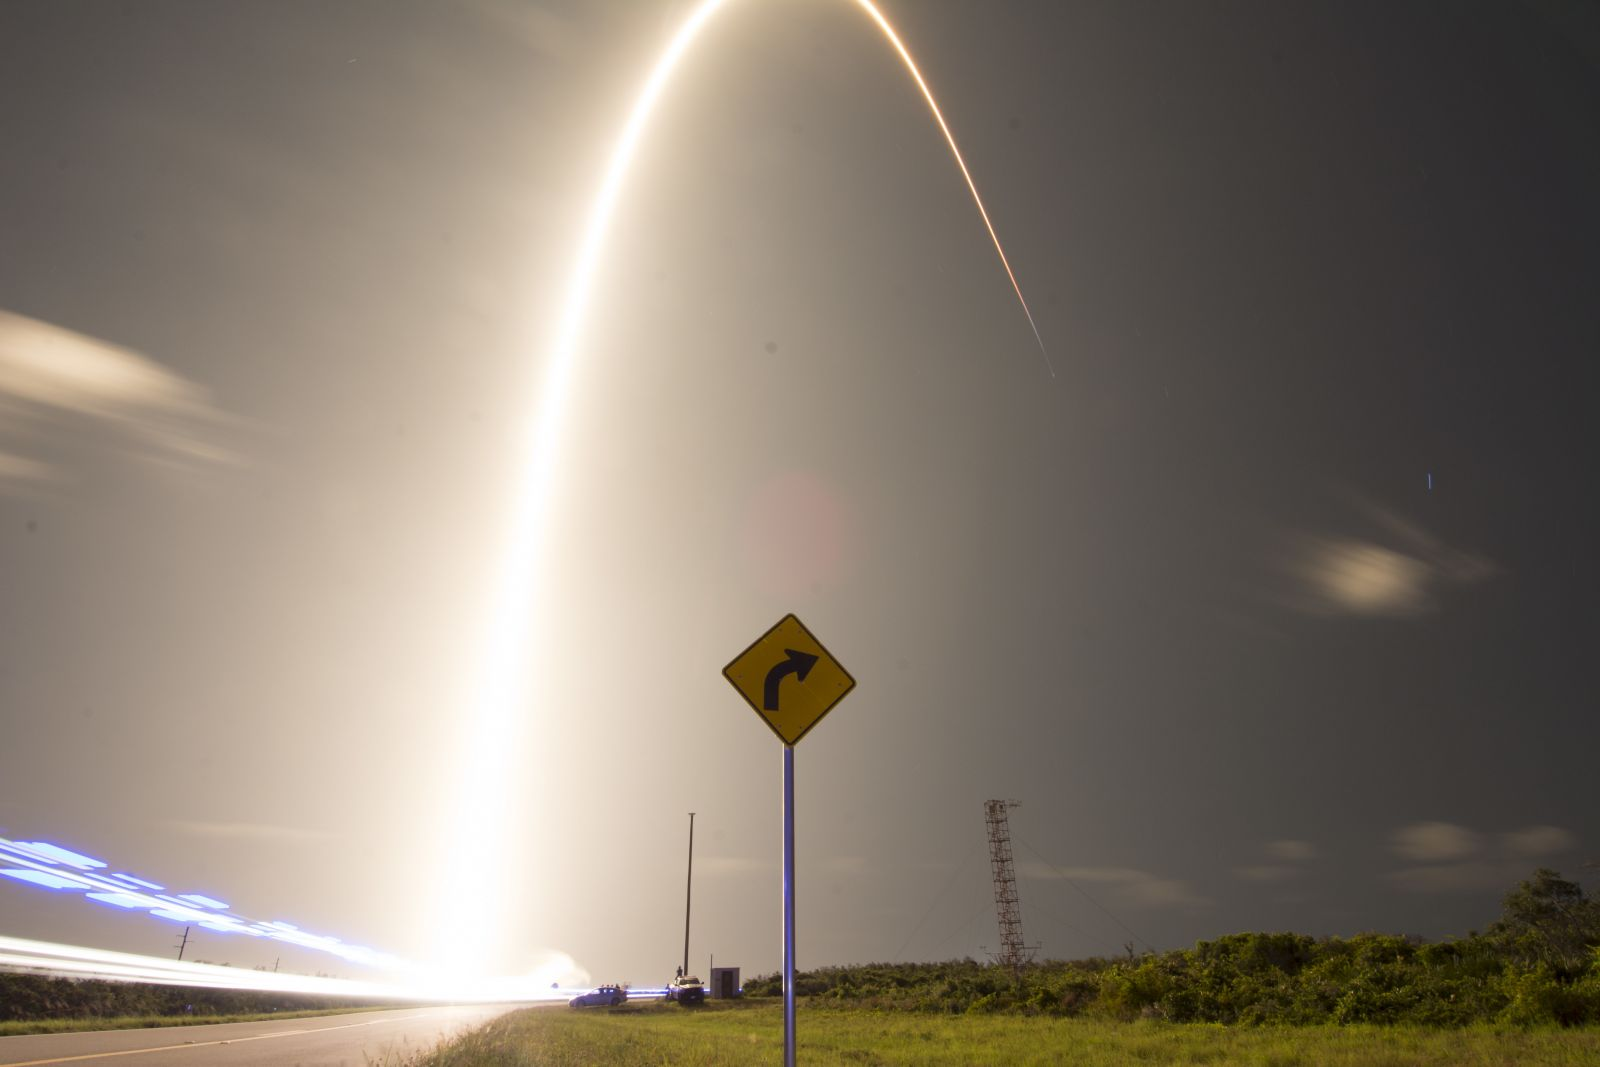 A SpaceX Falcon 9 rocket burns an arc across the skies of Florida. Photo Credit: SpaceX